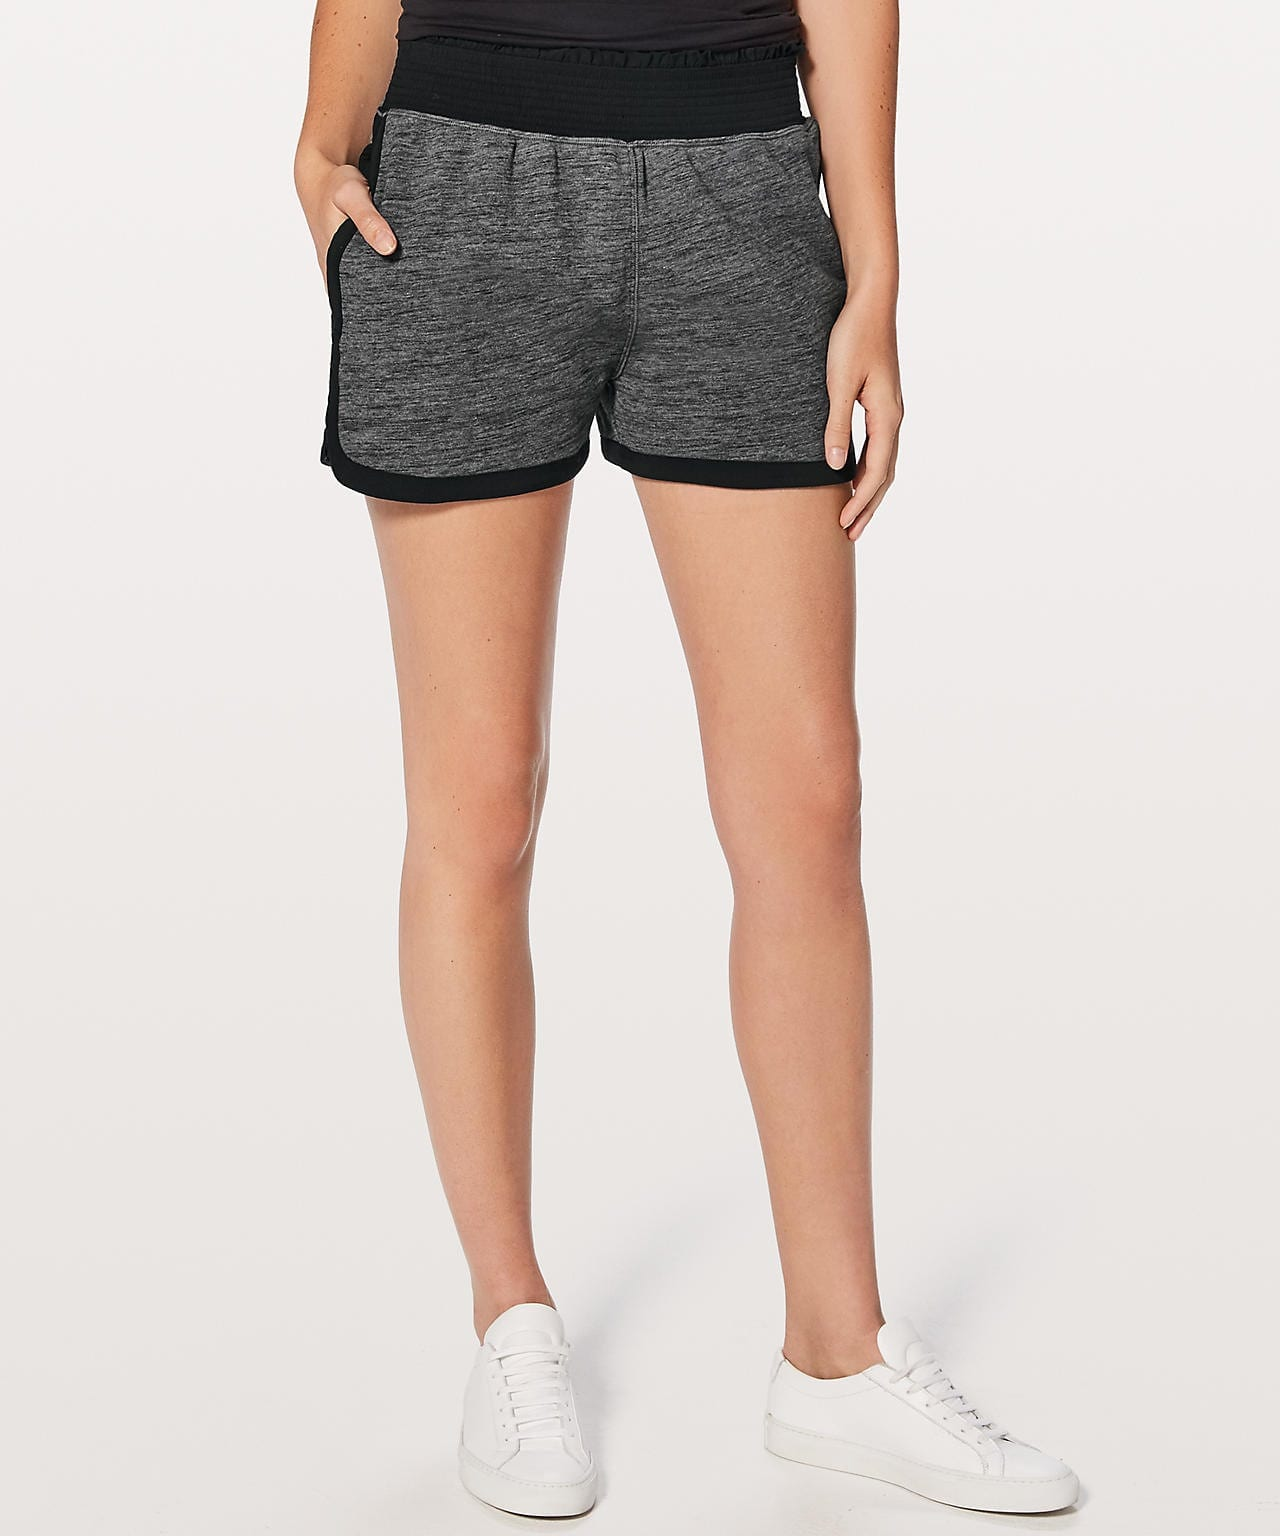 Cool & Collected Short